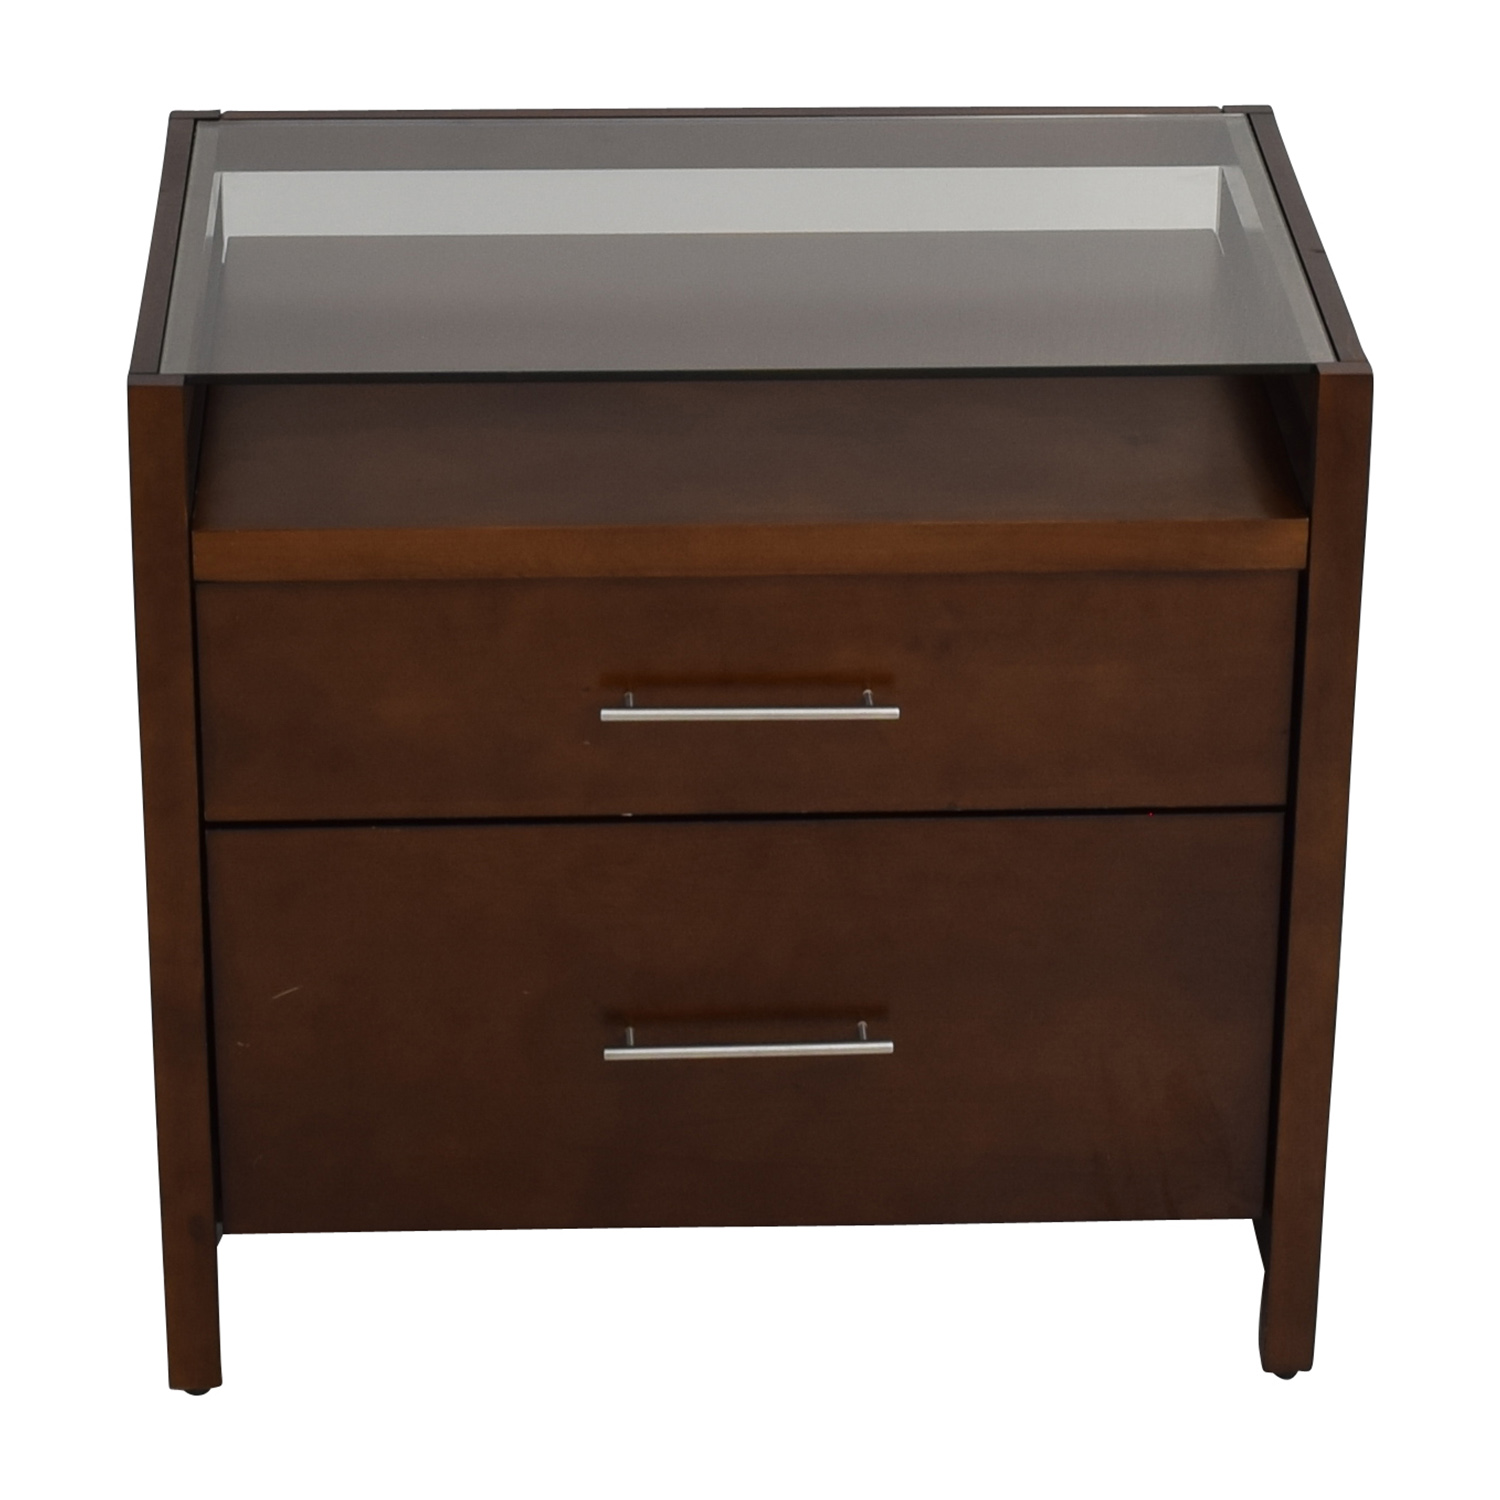 77 off crate and barrel crate barrel brown desk with two drawers tables. Black Bedroom Furniture Sets. Home Design Ideas